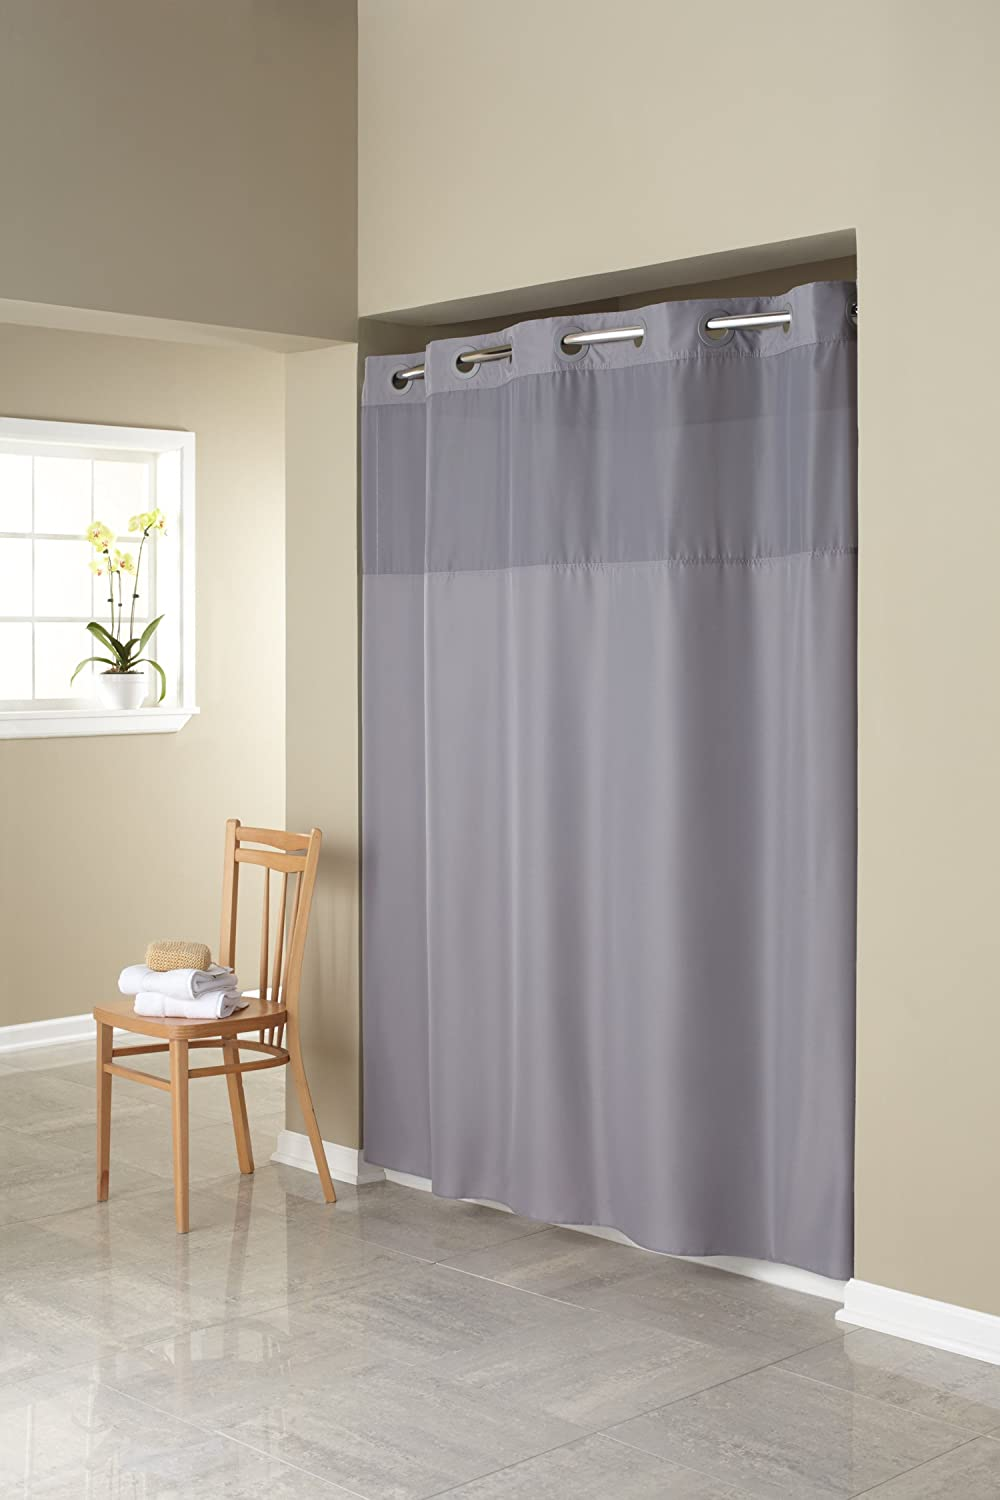 Hookless shower curtain with snap liner - Amazon Com Hookless Rbh40my408 Fabric Shower Curtain With Built In Liner Grey Home Kitchen